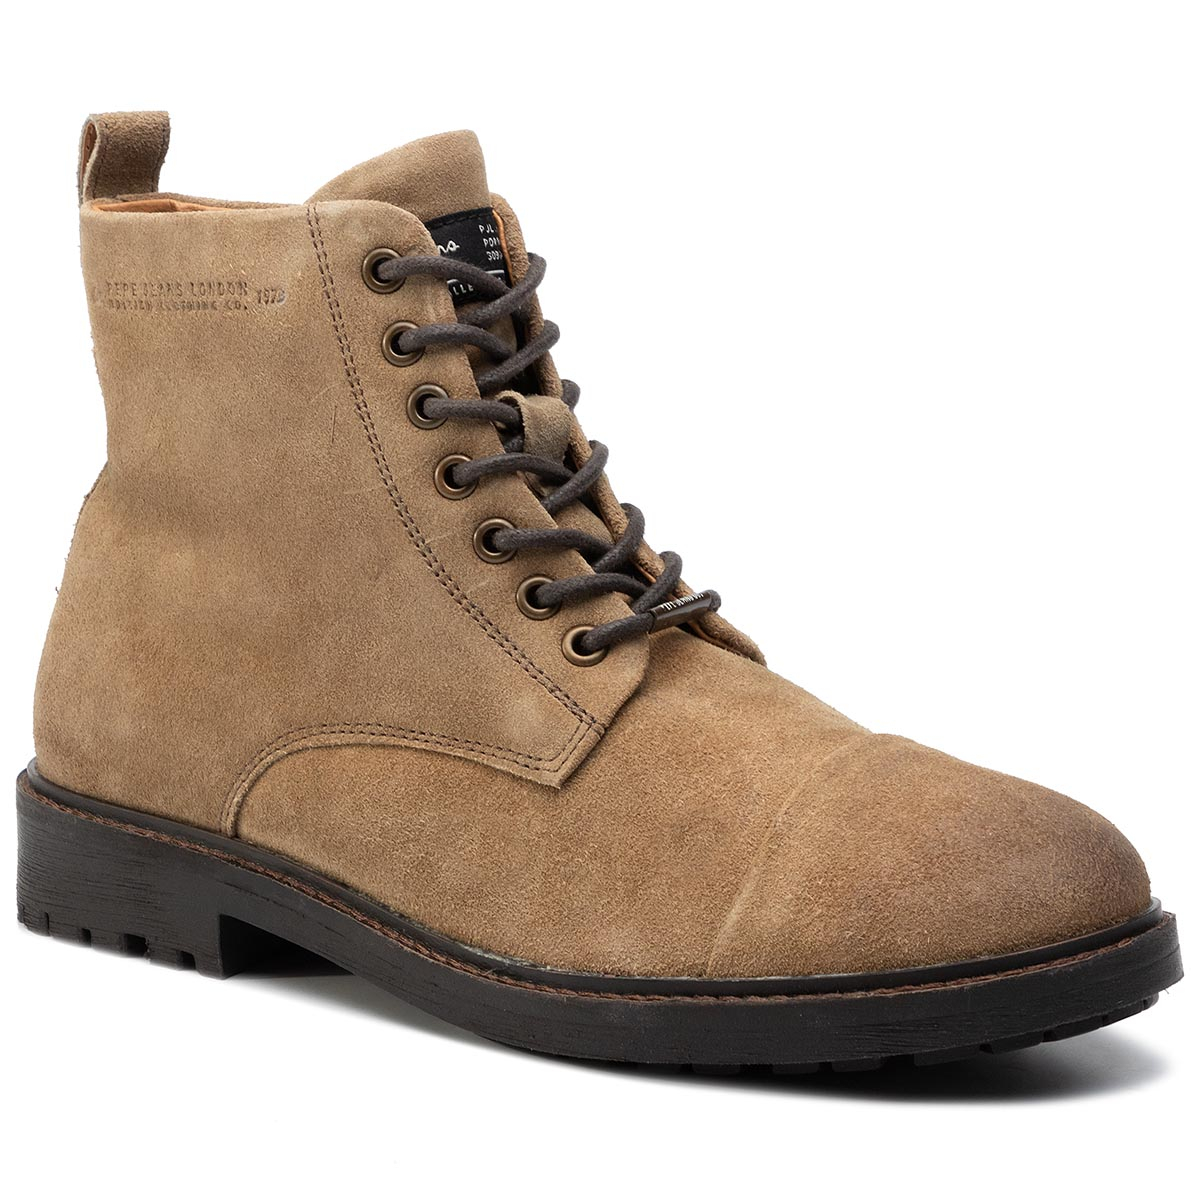 Cizme PEPE JEANS - Porter Boot Suede PMS50180 Tan 869